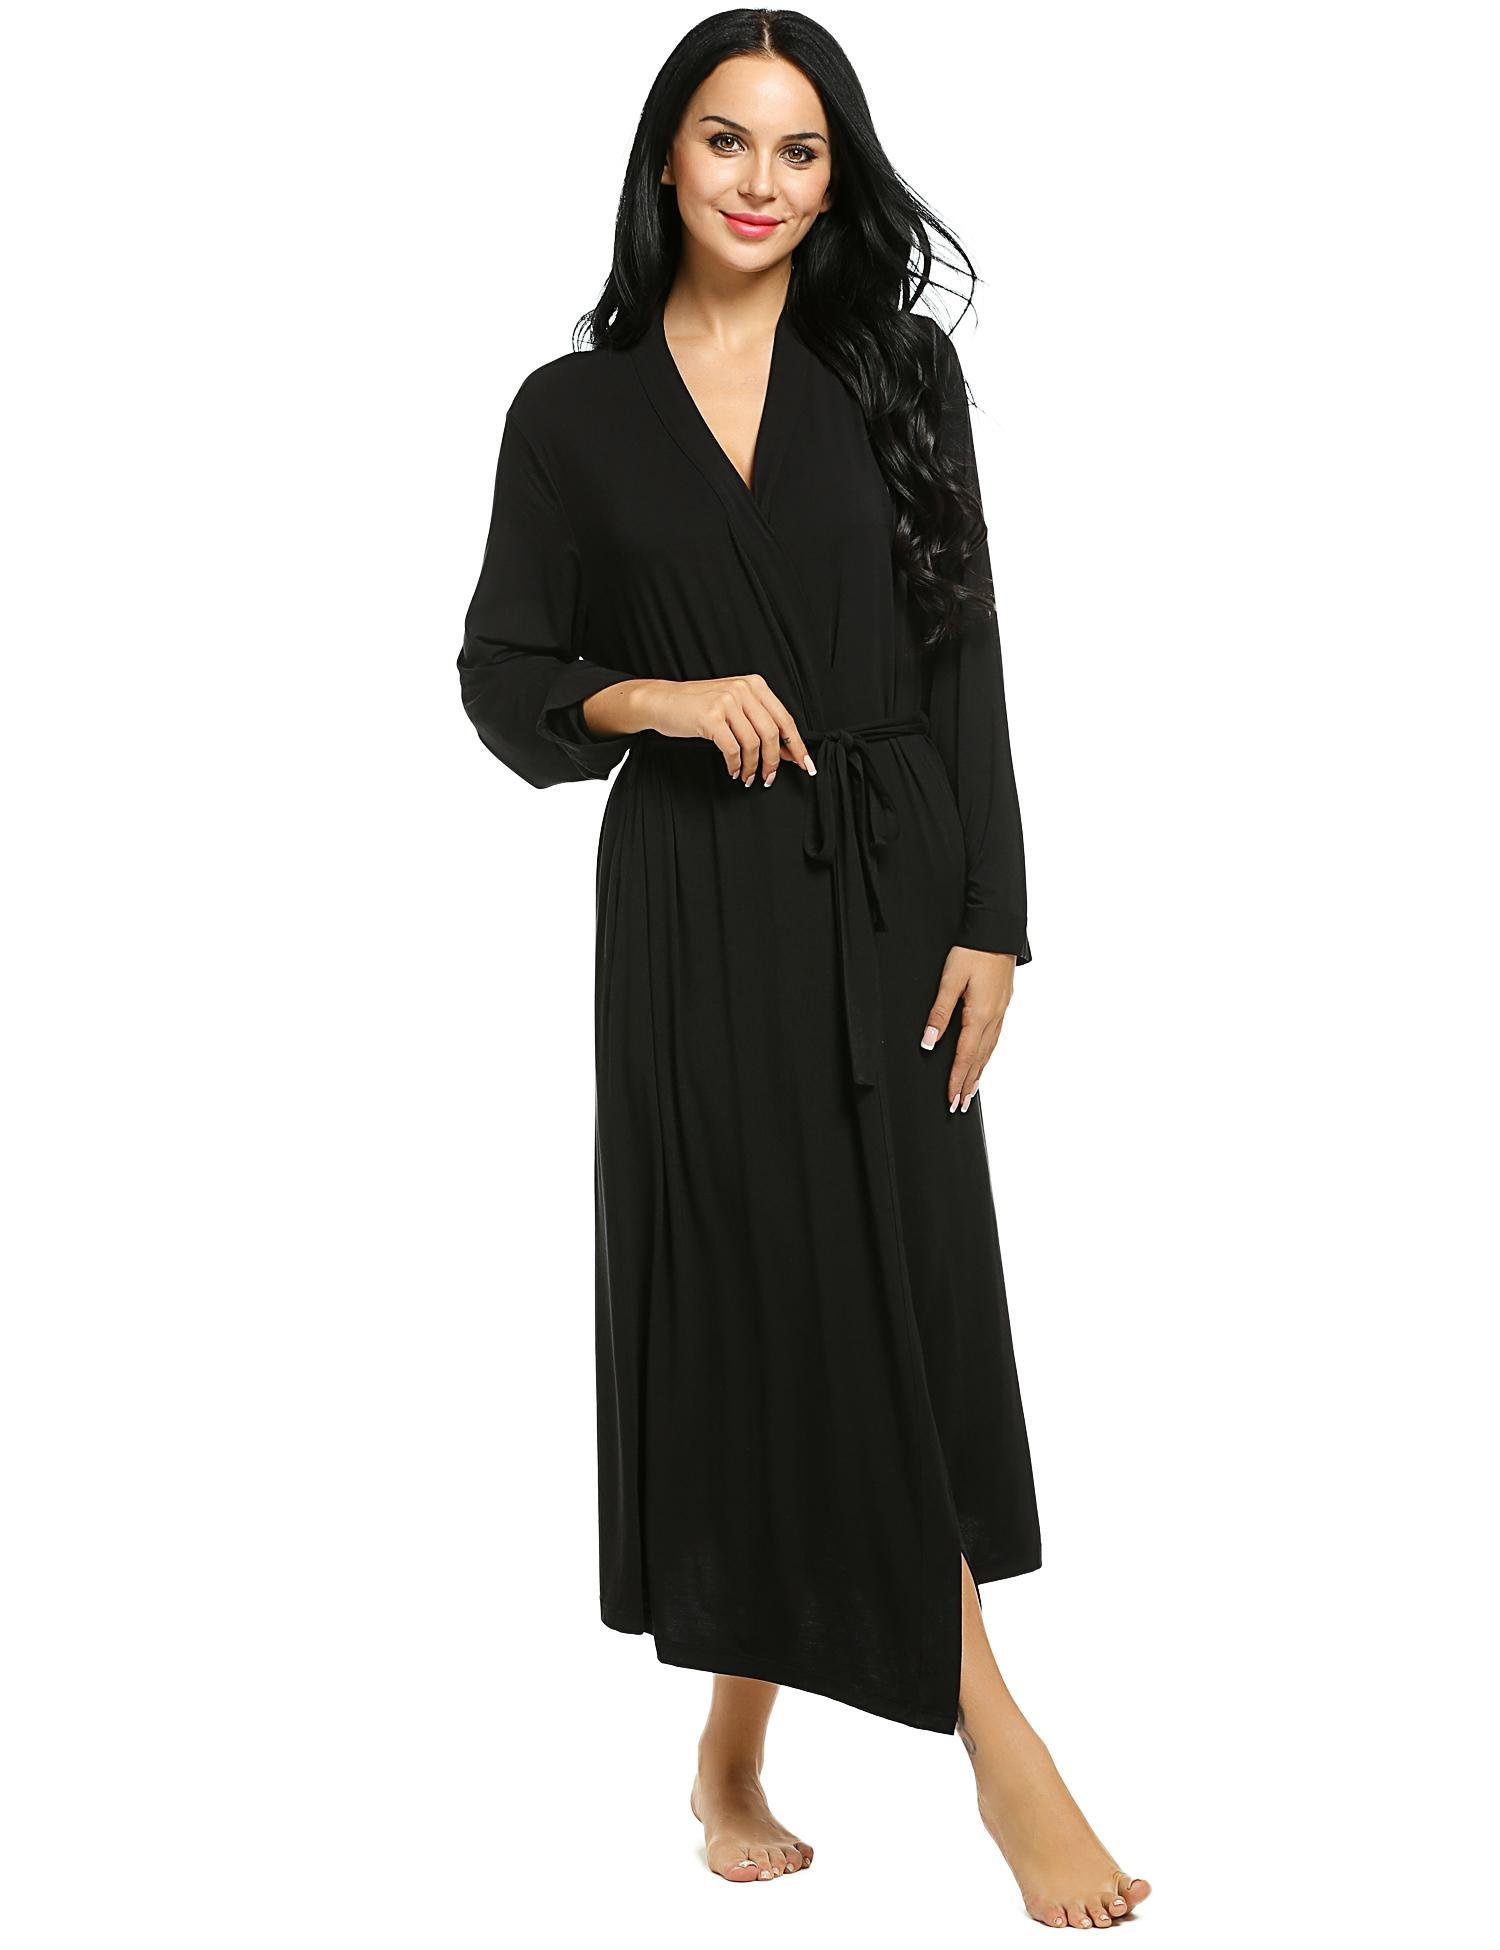 Dozenla Women Bathrobe V-Neck Long Sleeve Nightwear Long Robe Sleepwear